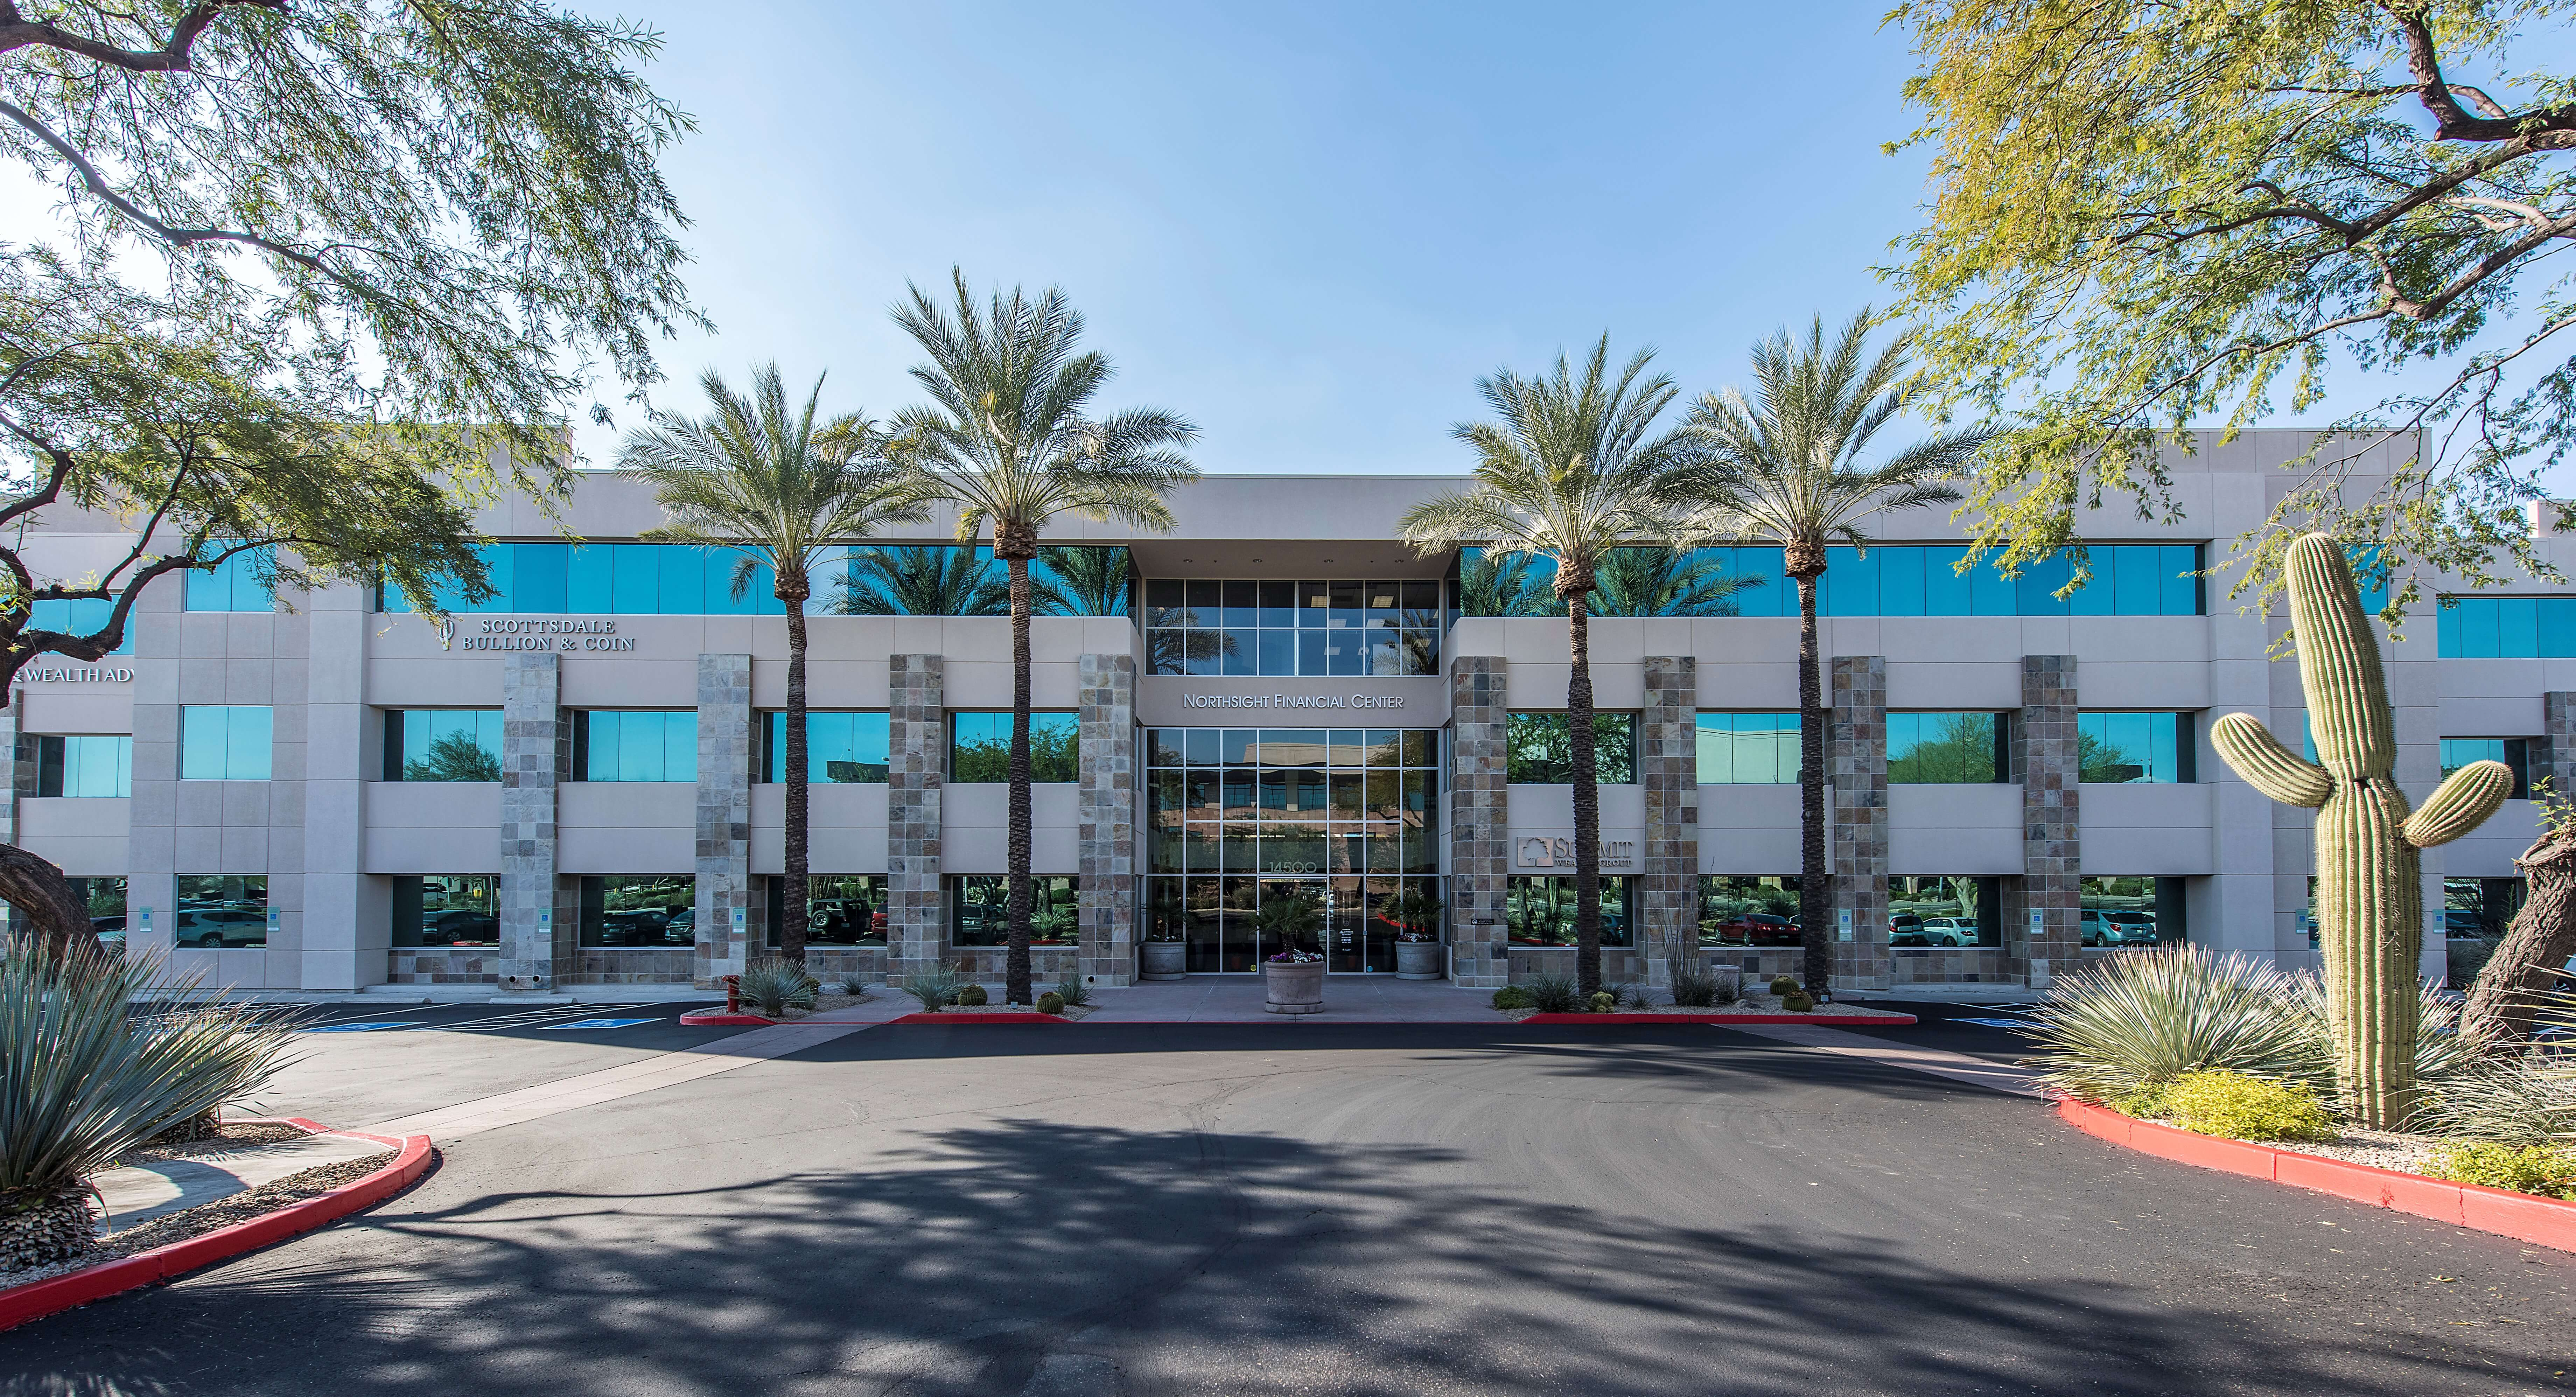 BH Properties Heats Up Presence in Arizona with $55.3 Million Invested in Two Months